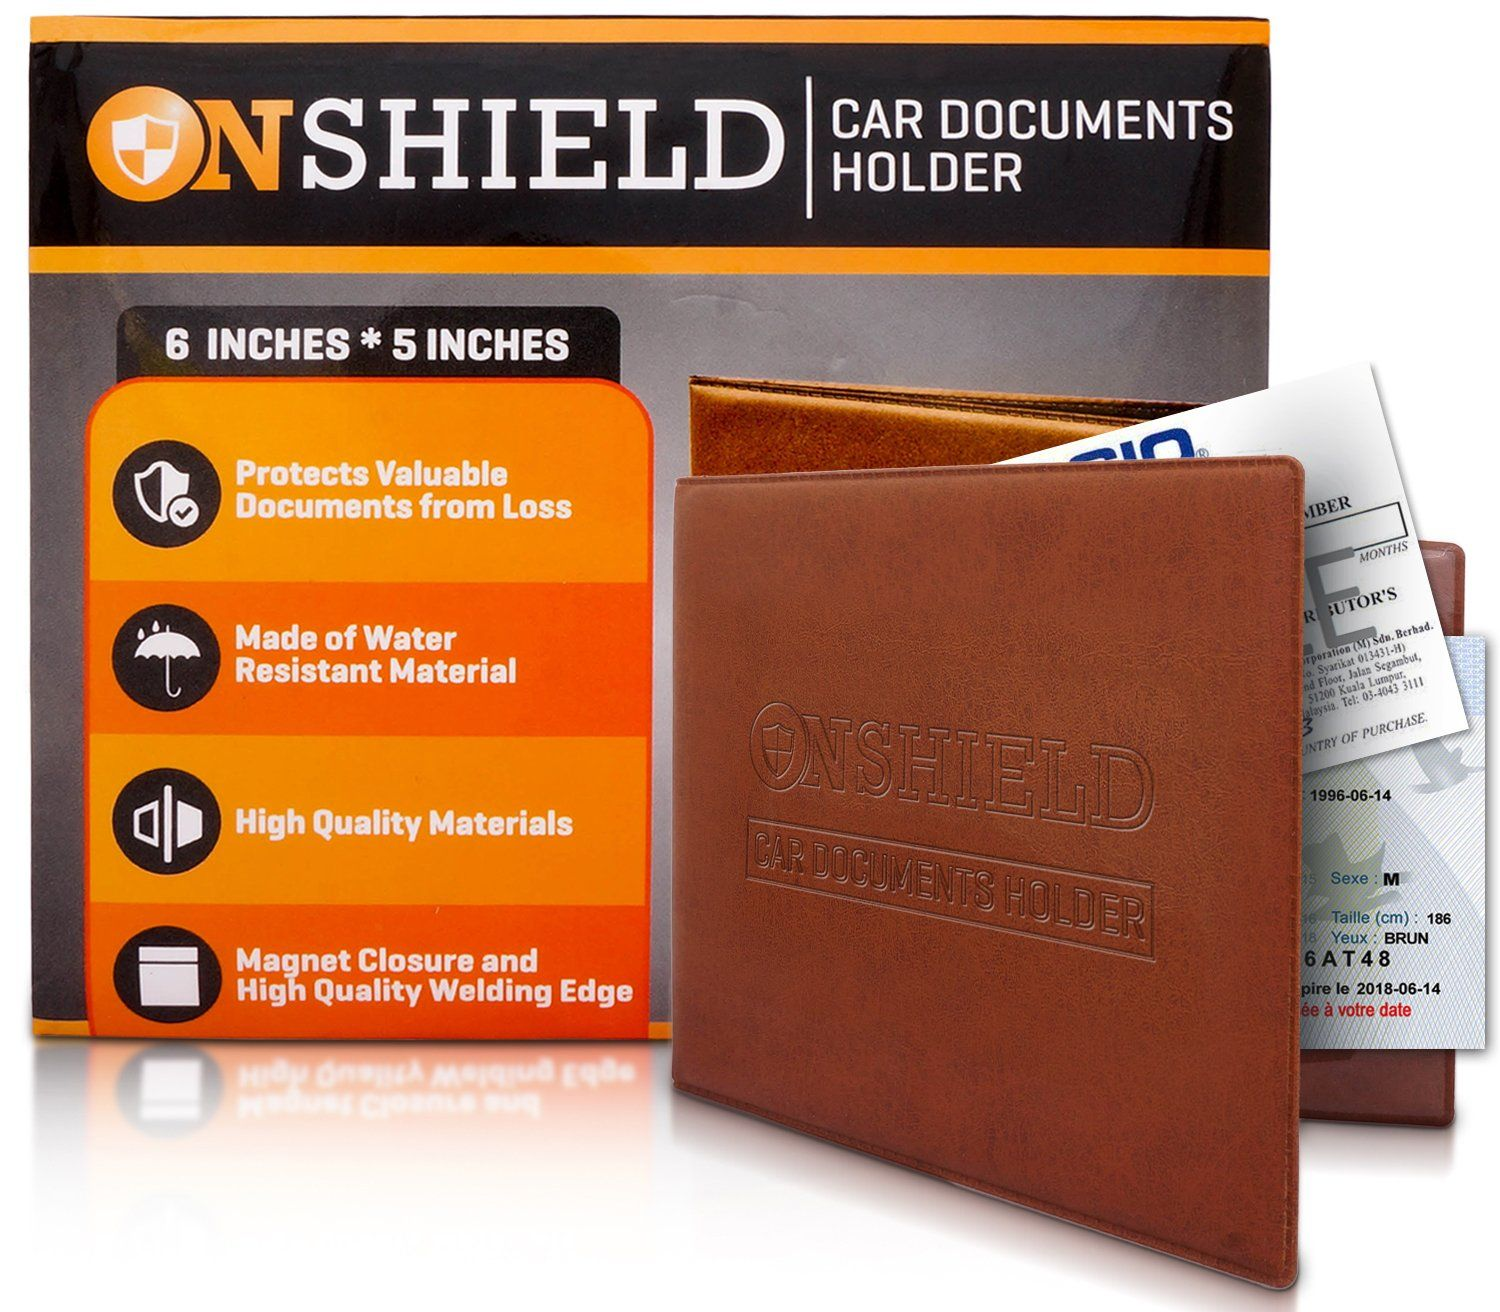 Car registration and insurance card holder with